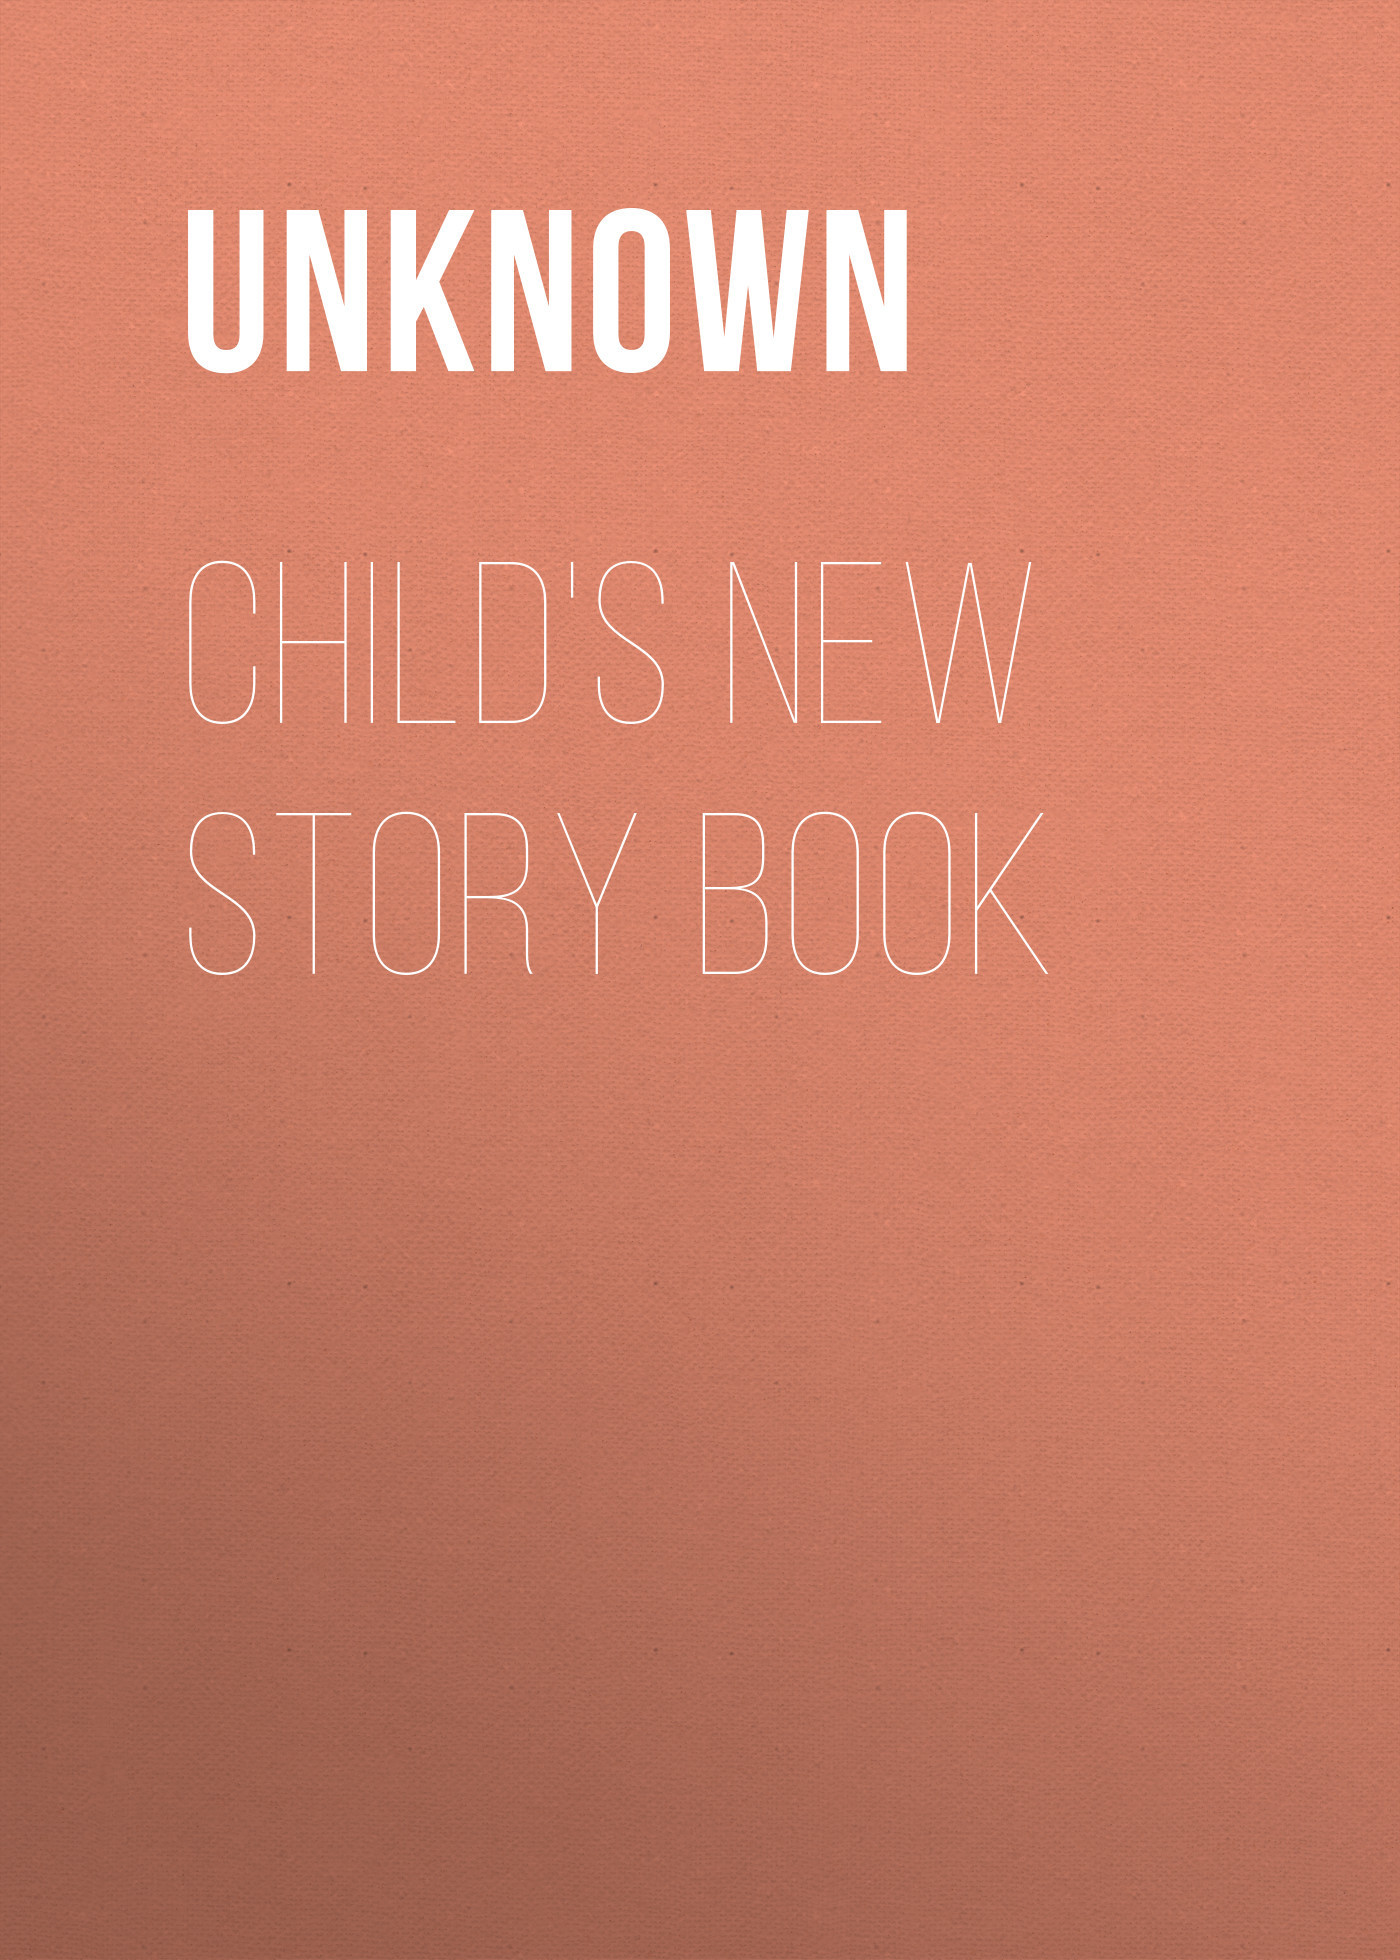 Unknown Child's New Story Book